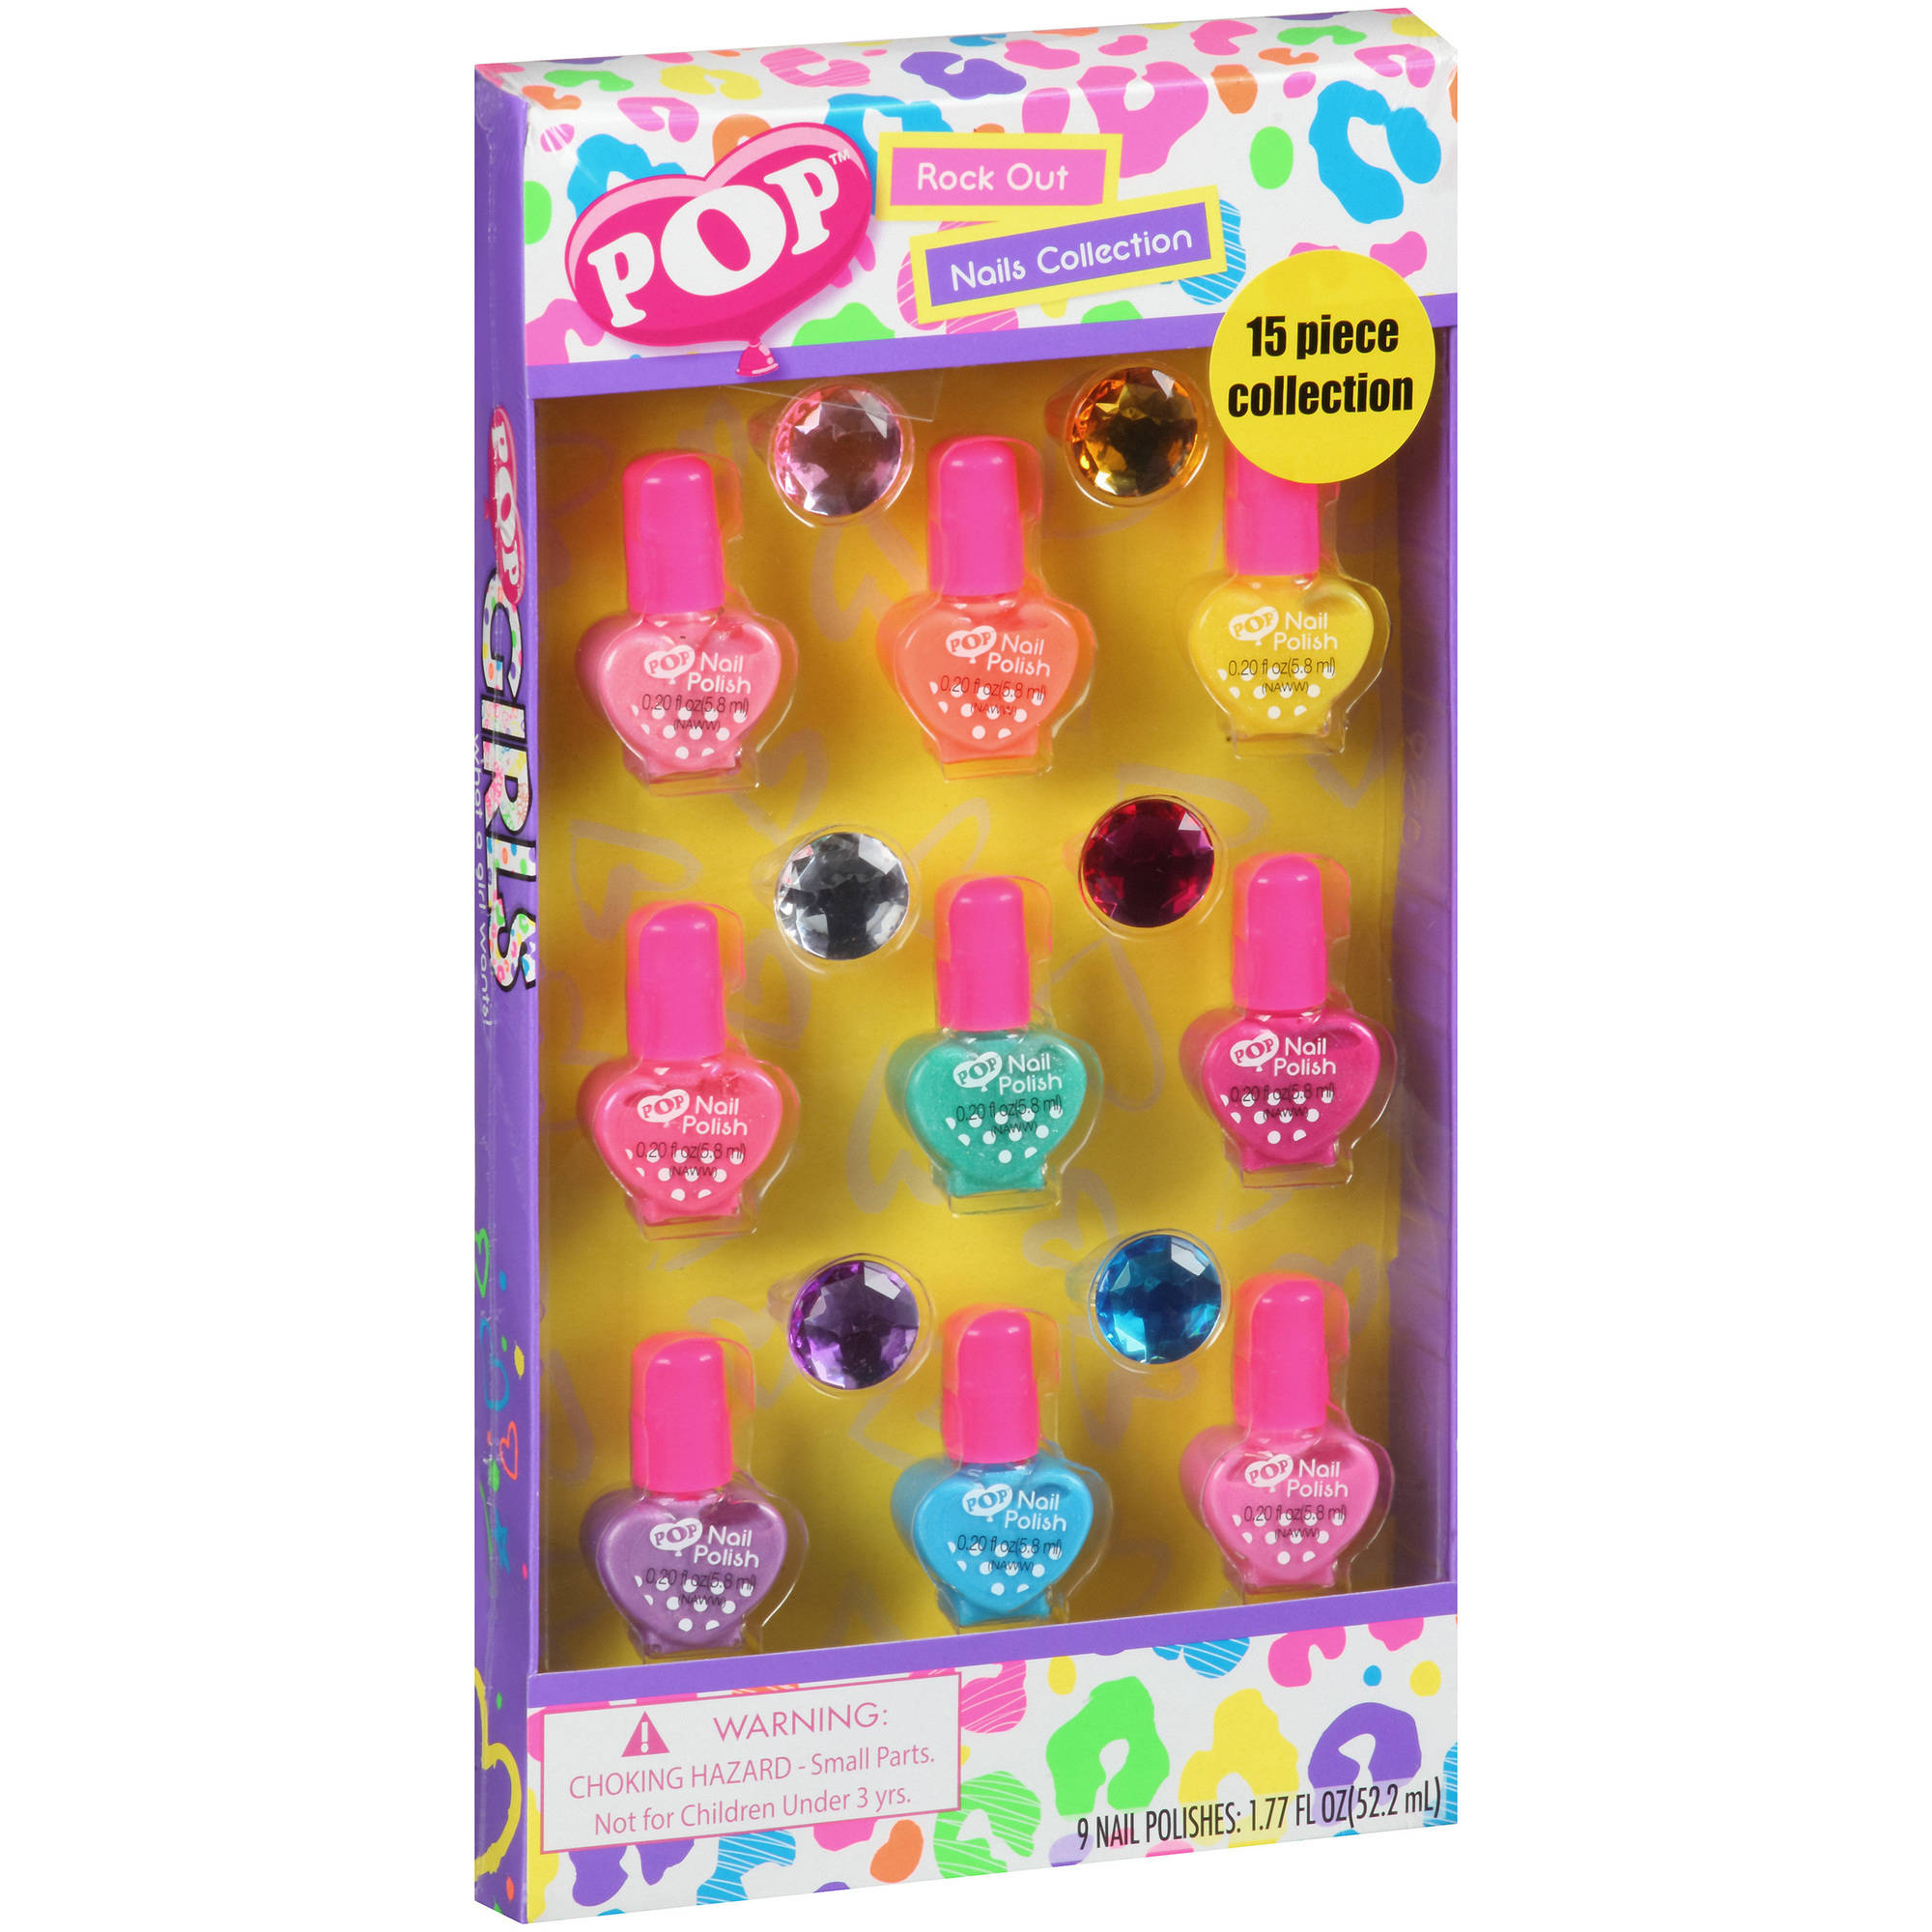 POP Rock Out Nails Collection Gift Set, 15 pc